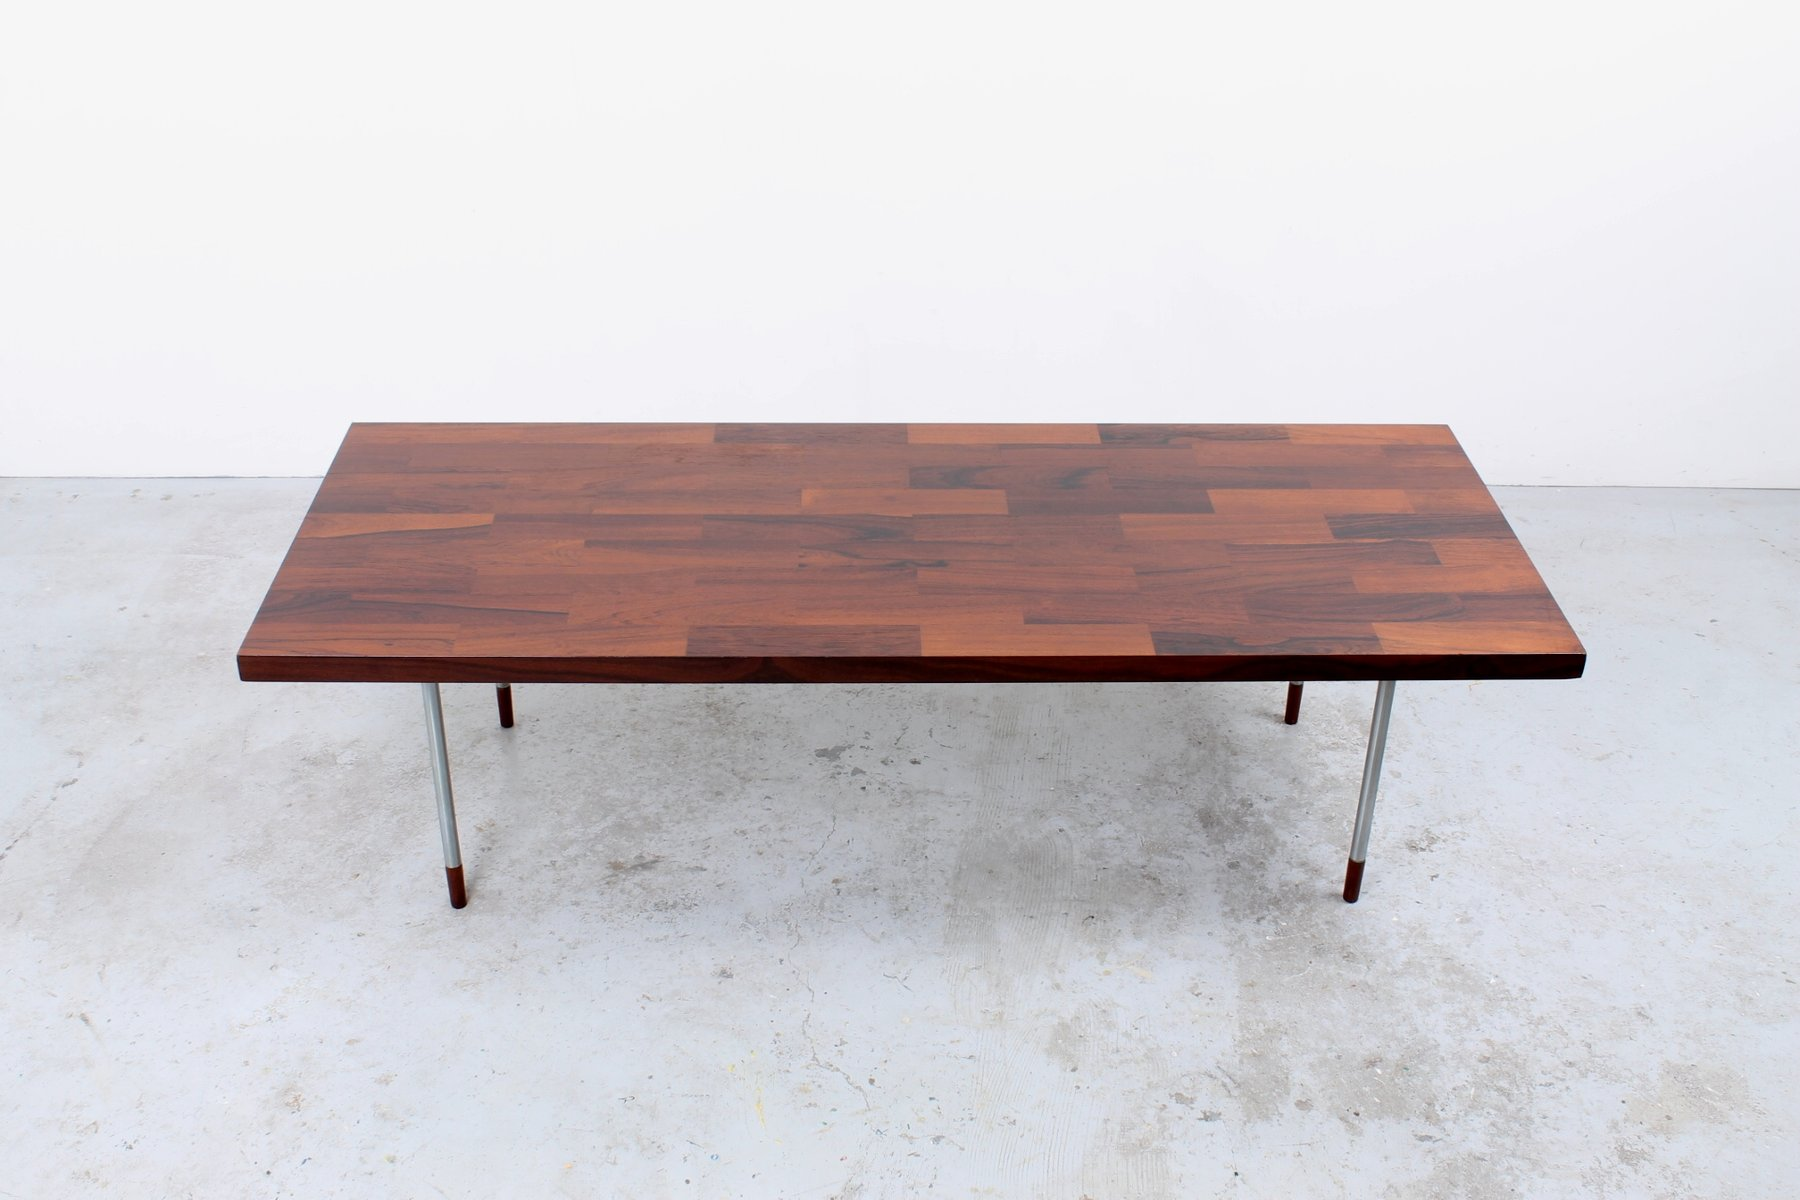 Vintage Coffee Table with Rosewood Inlay from Fristho for sale at